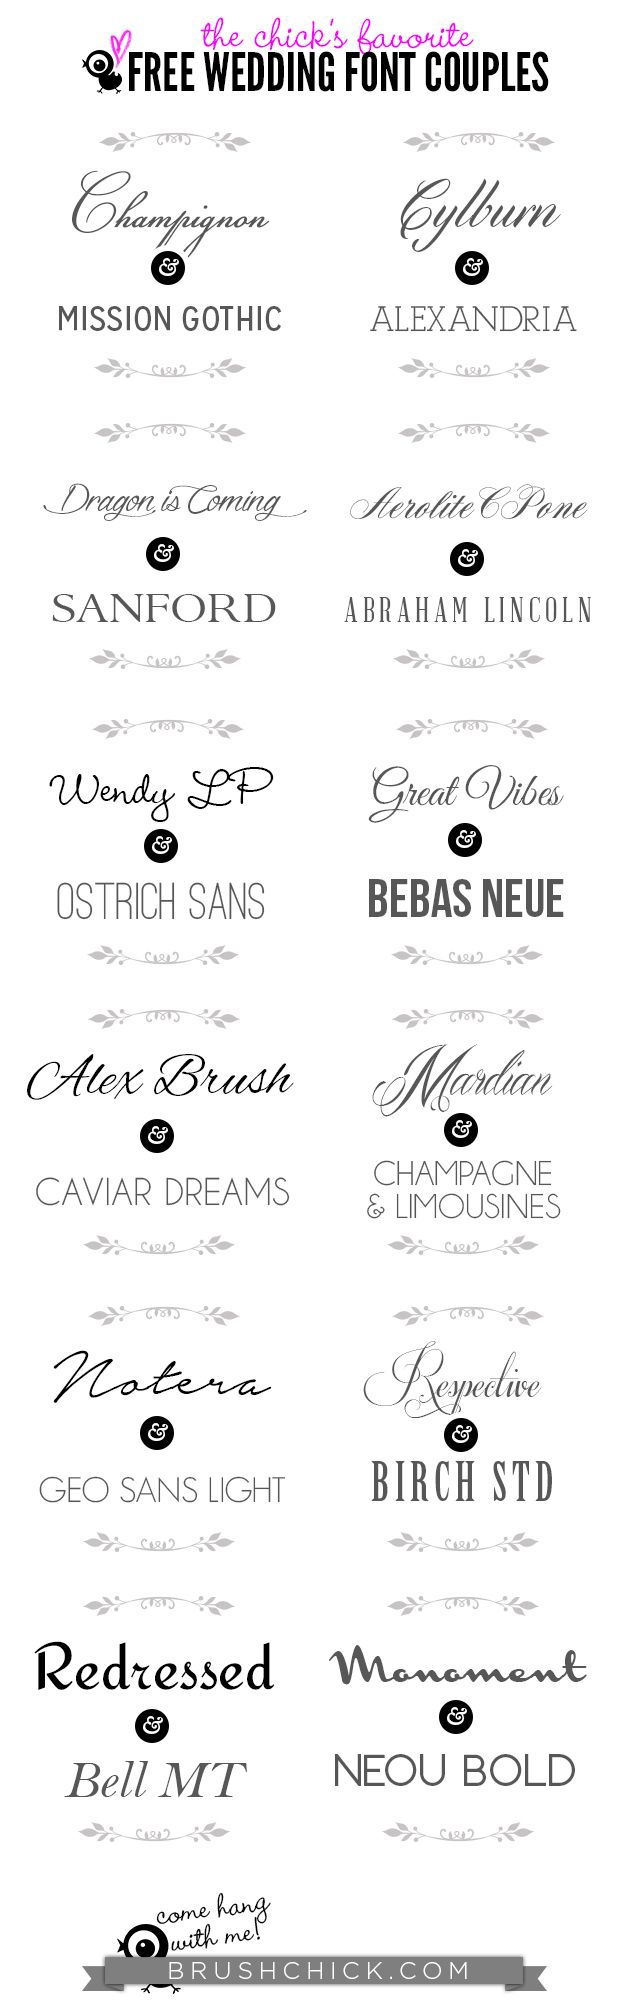 The Best Free Wedding Invitation Font Couples || The Brush Chick ...